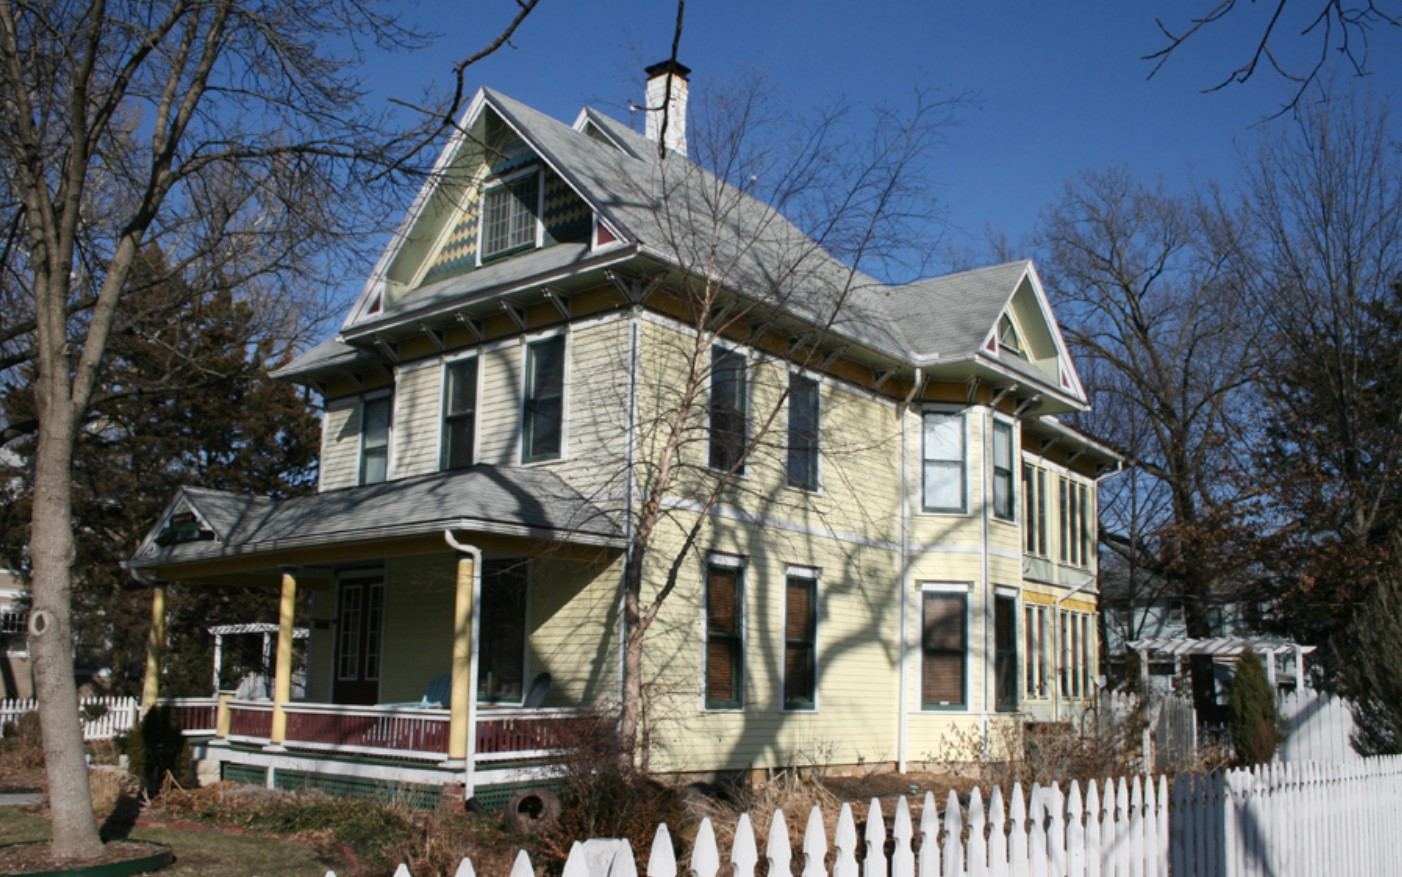 2008 photograph of Edward House home by Hernly Associates (Kansas Historic Resources Inventory database)